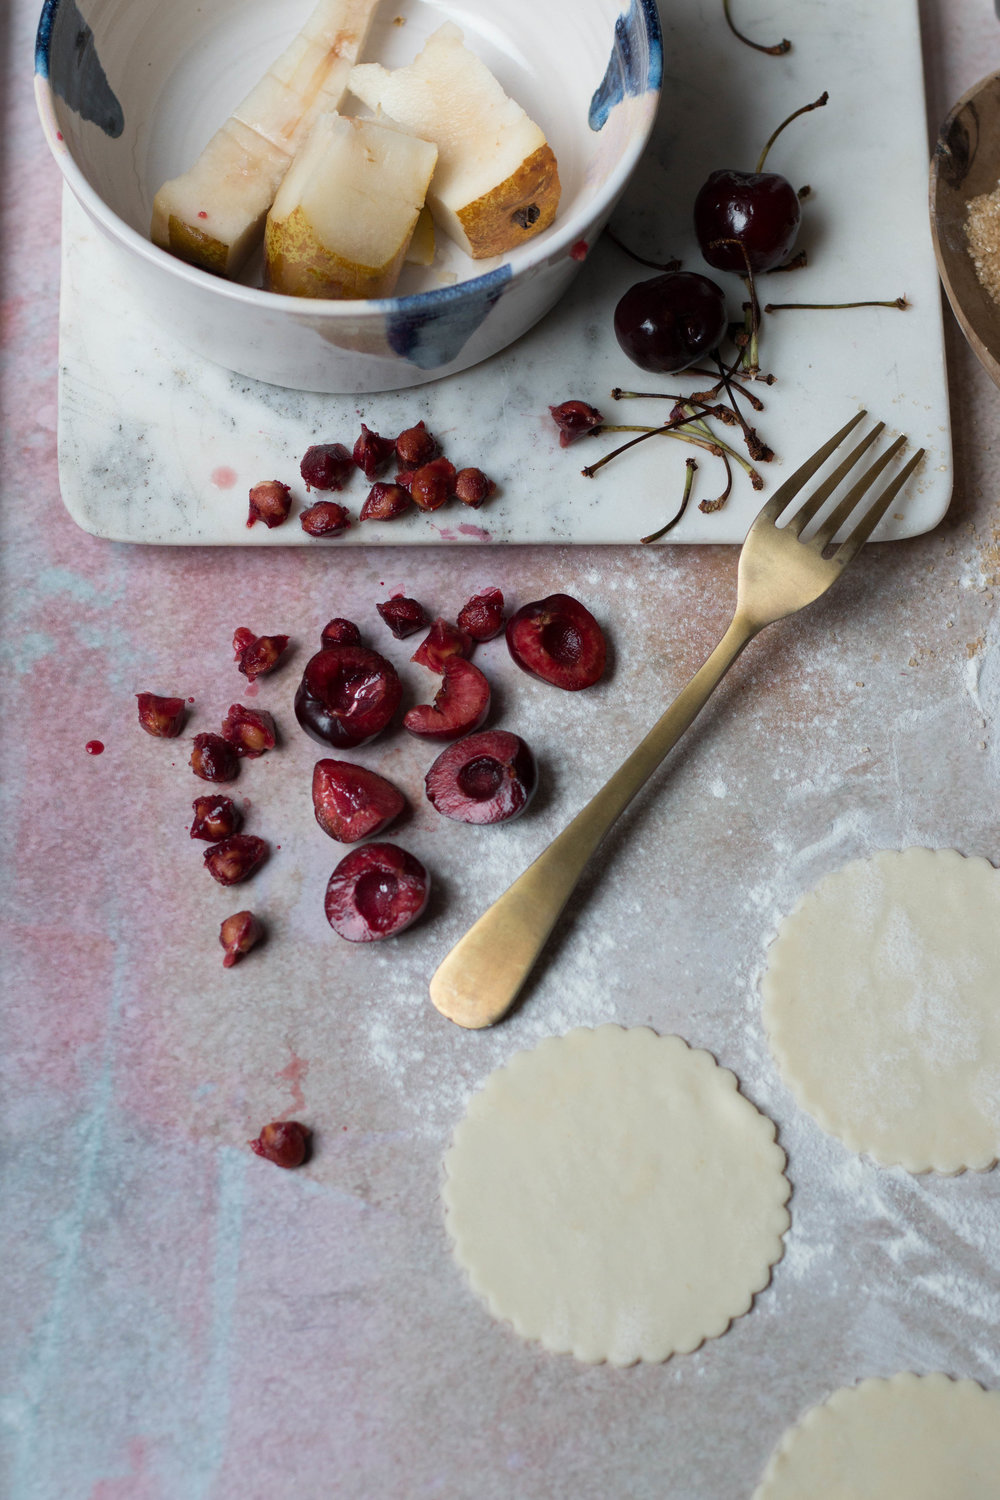 Cherry + Pear Pies by Jette Virdi, food stylist based in Dublin